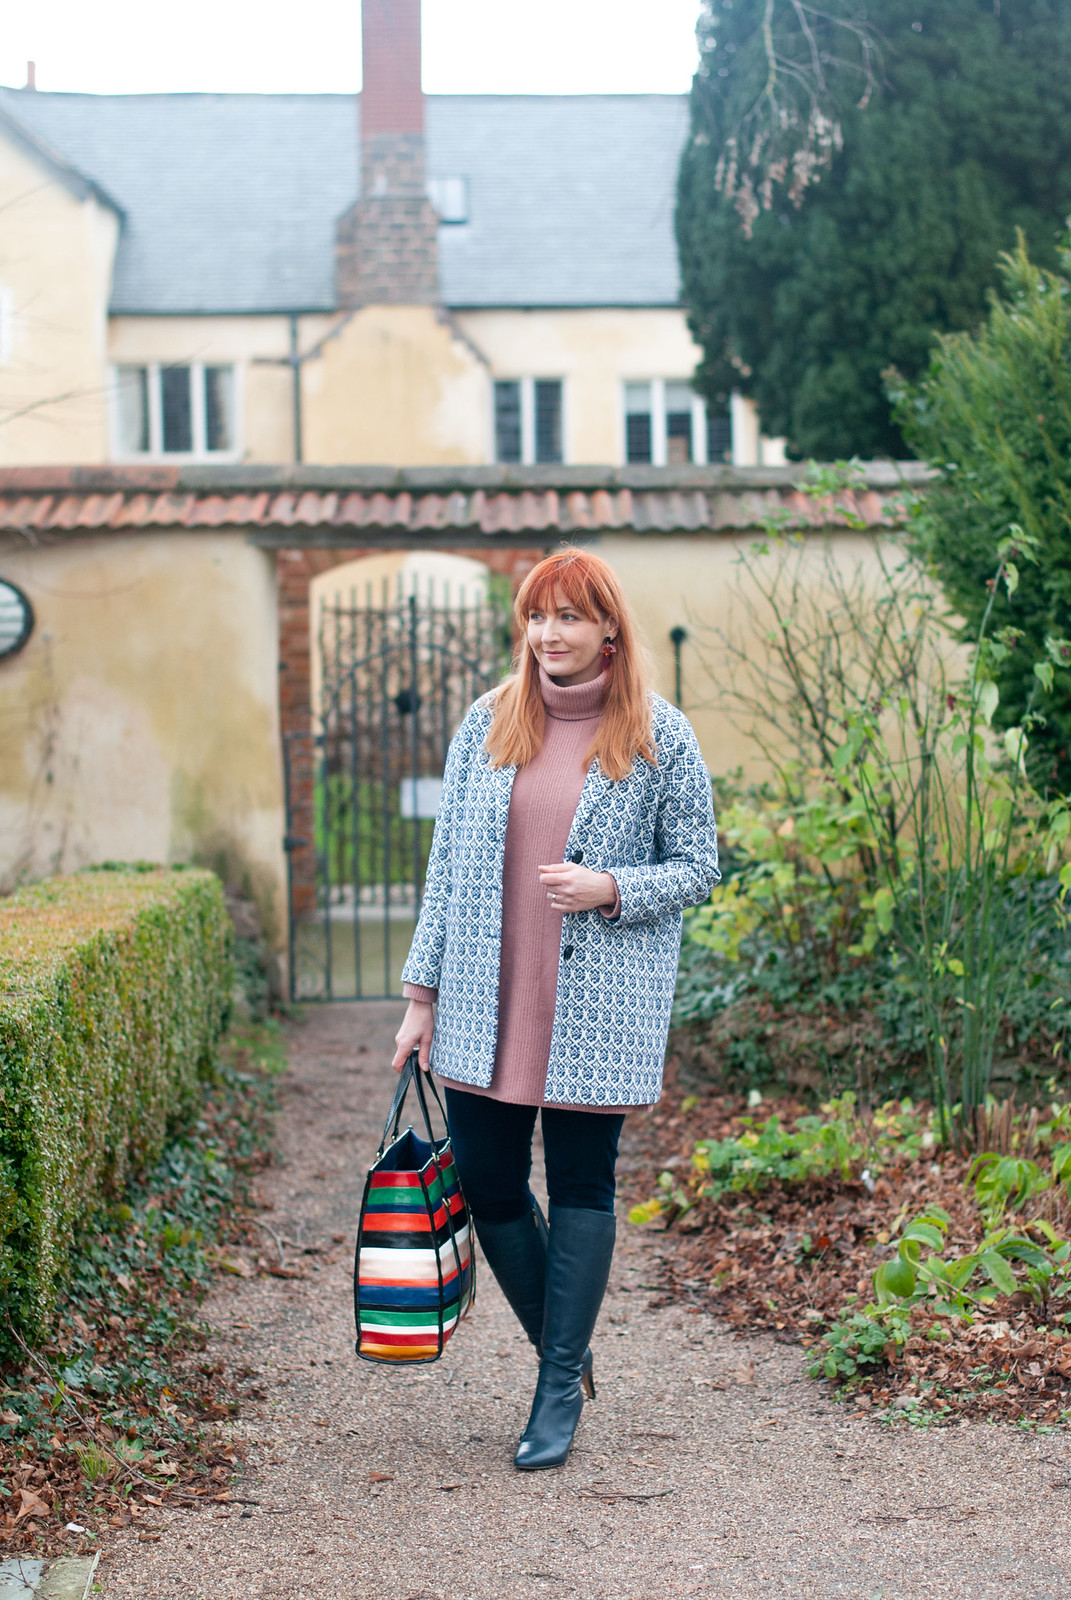 A Modest Way to Wear a Sweater Dress and Knee High Boots |Z Not Dressed As Lamb, over 40 fashion